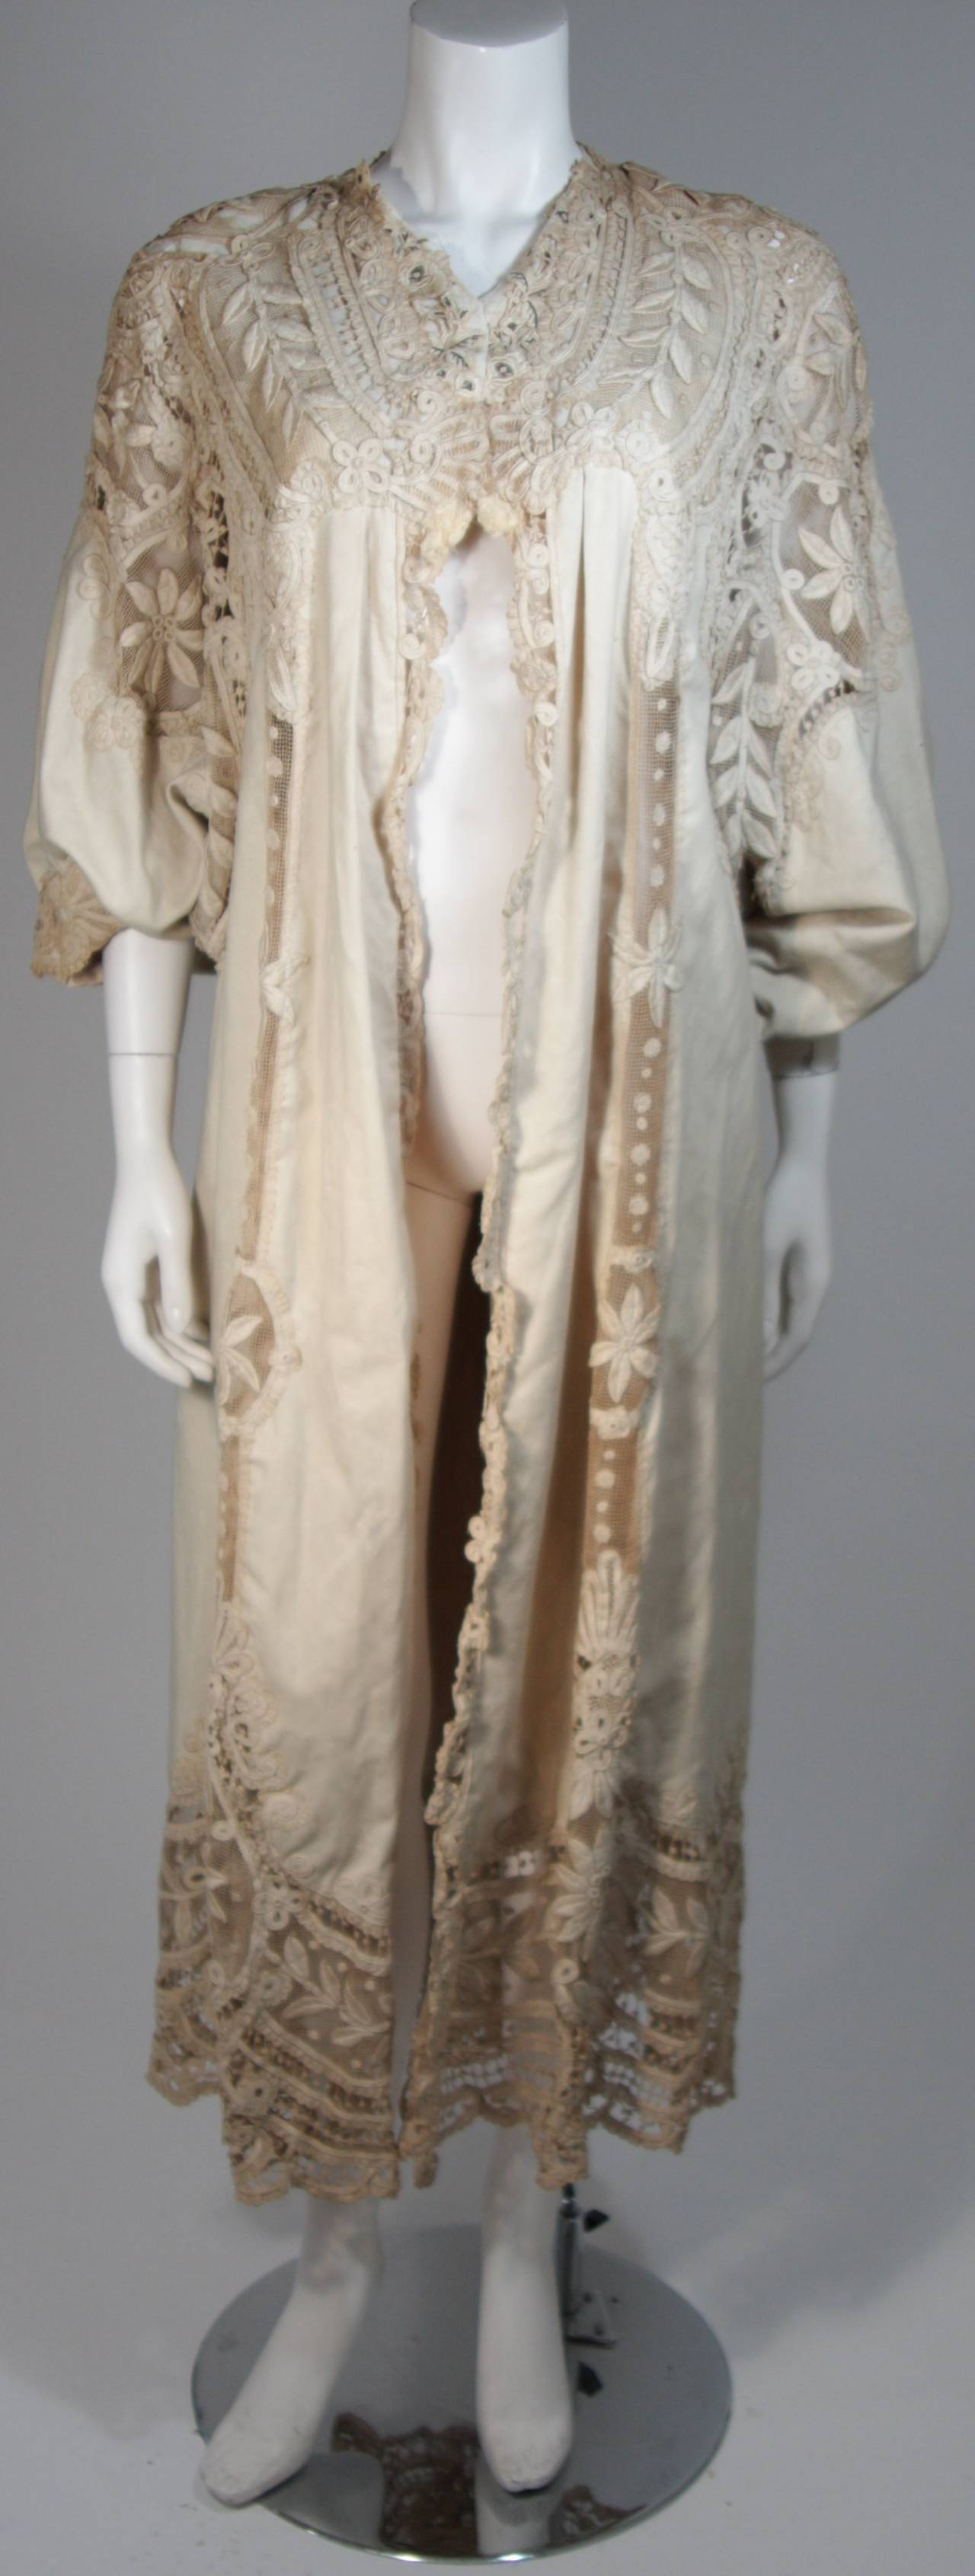 This antique coat is composed of off white natural material, with a tea stained hue, featuring bell style sleeves. There are hook and eye closures. This garment is antique and does show signs of age, should be handled with care.